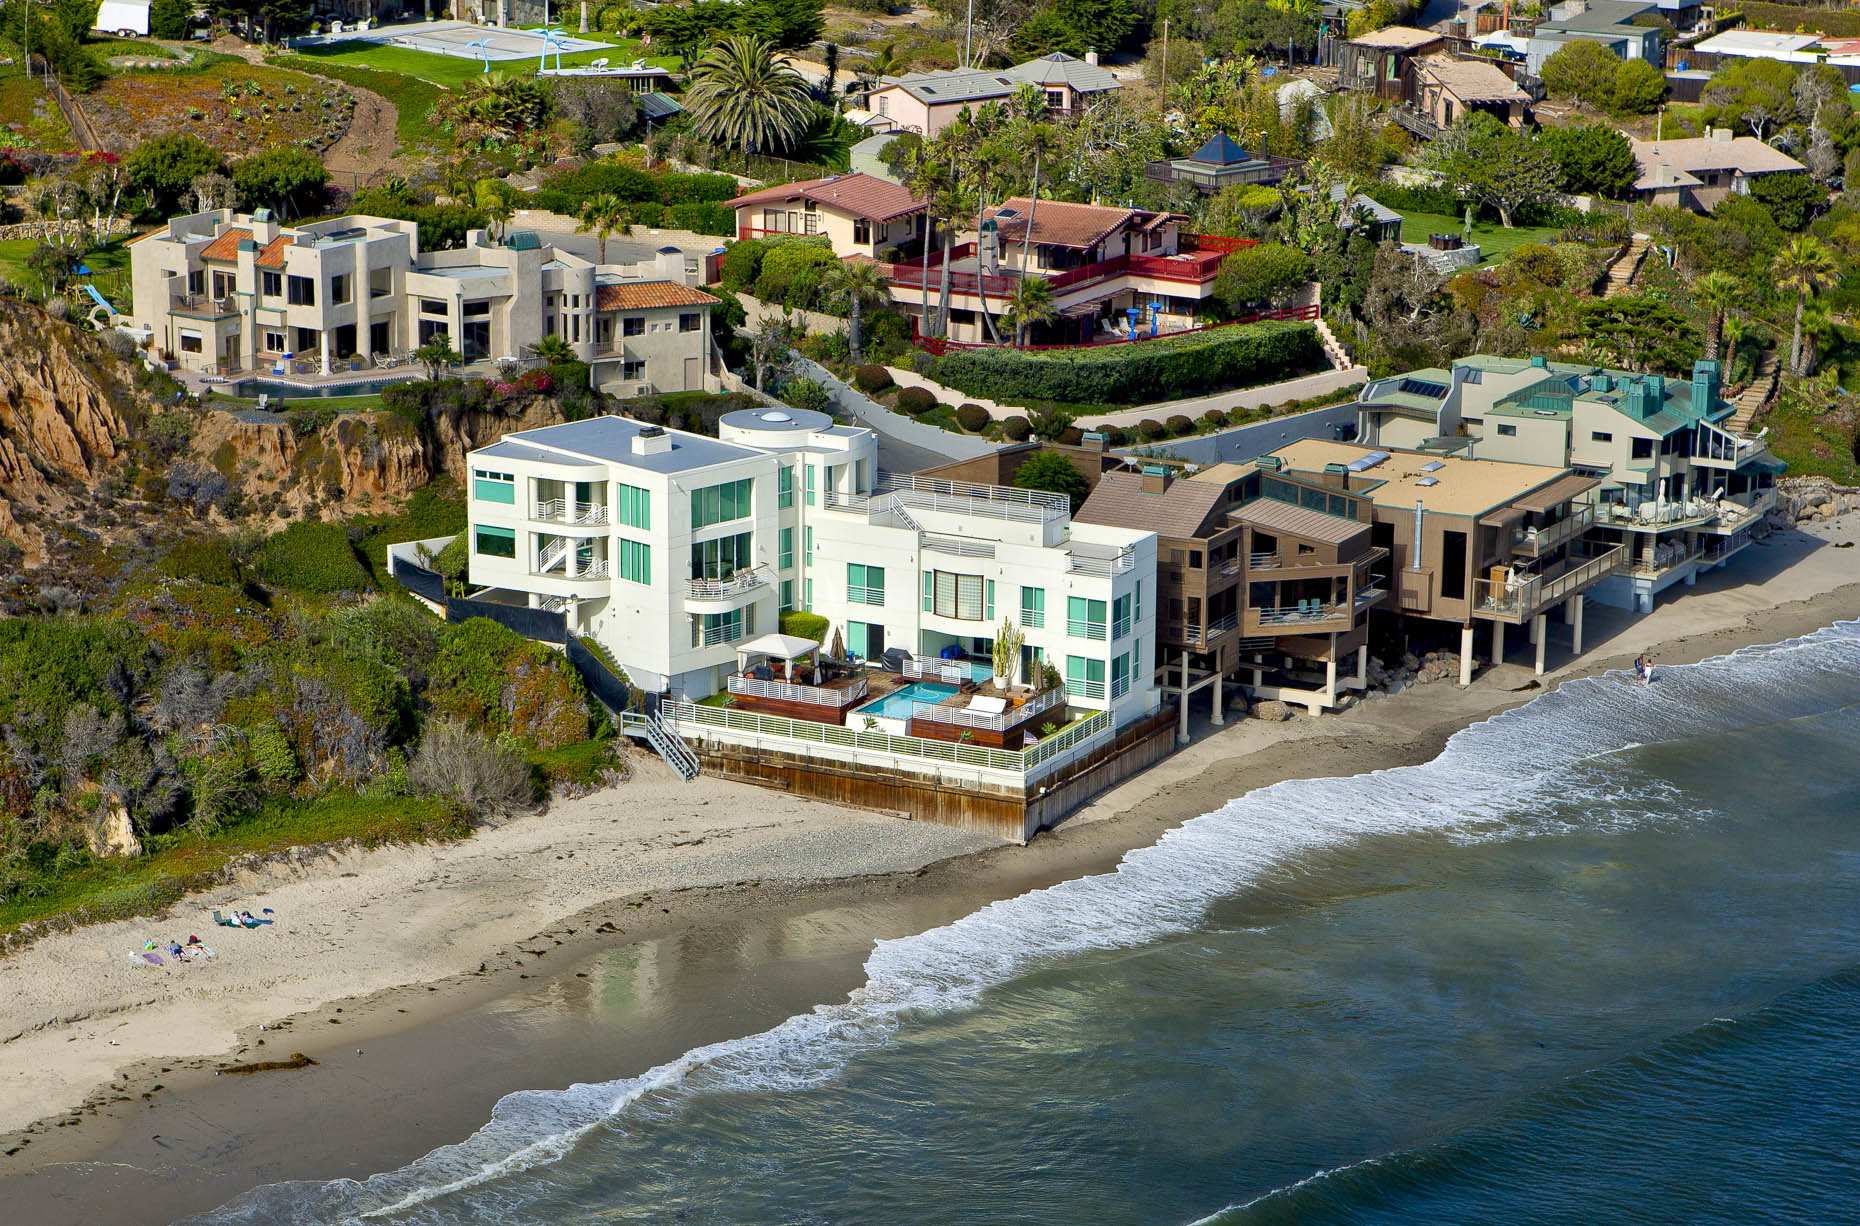 Los Angeles aerial photography Stefen Turner Architectural Photographer Malibu